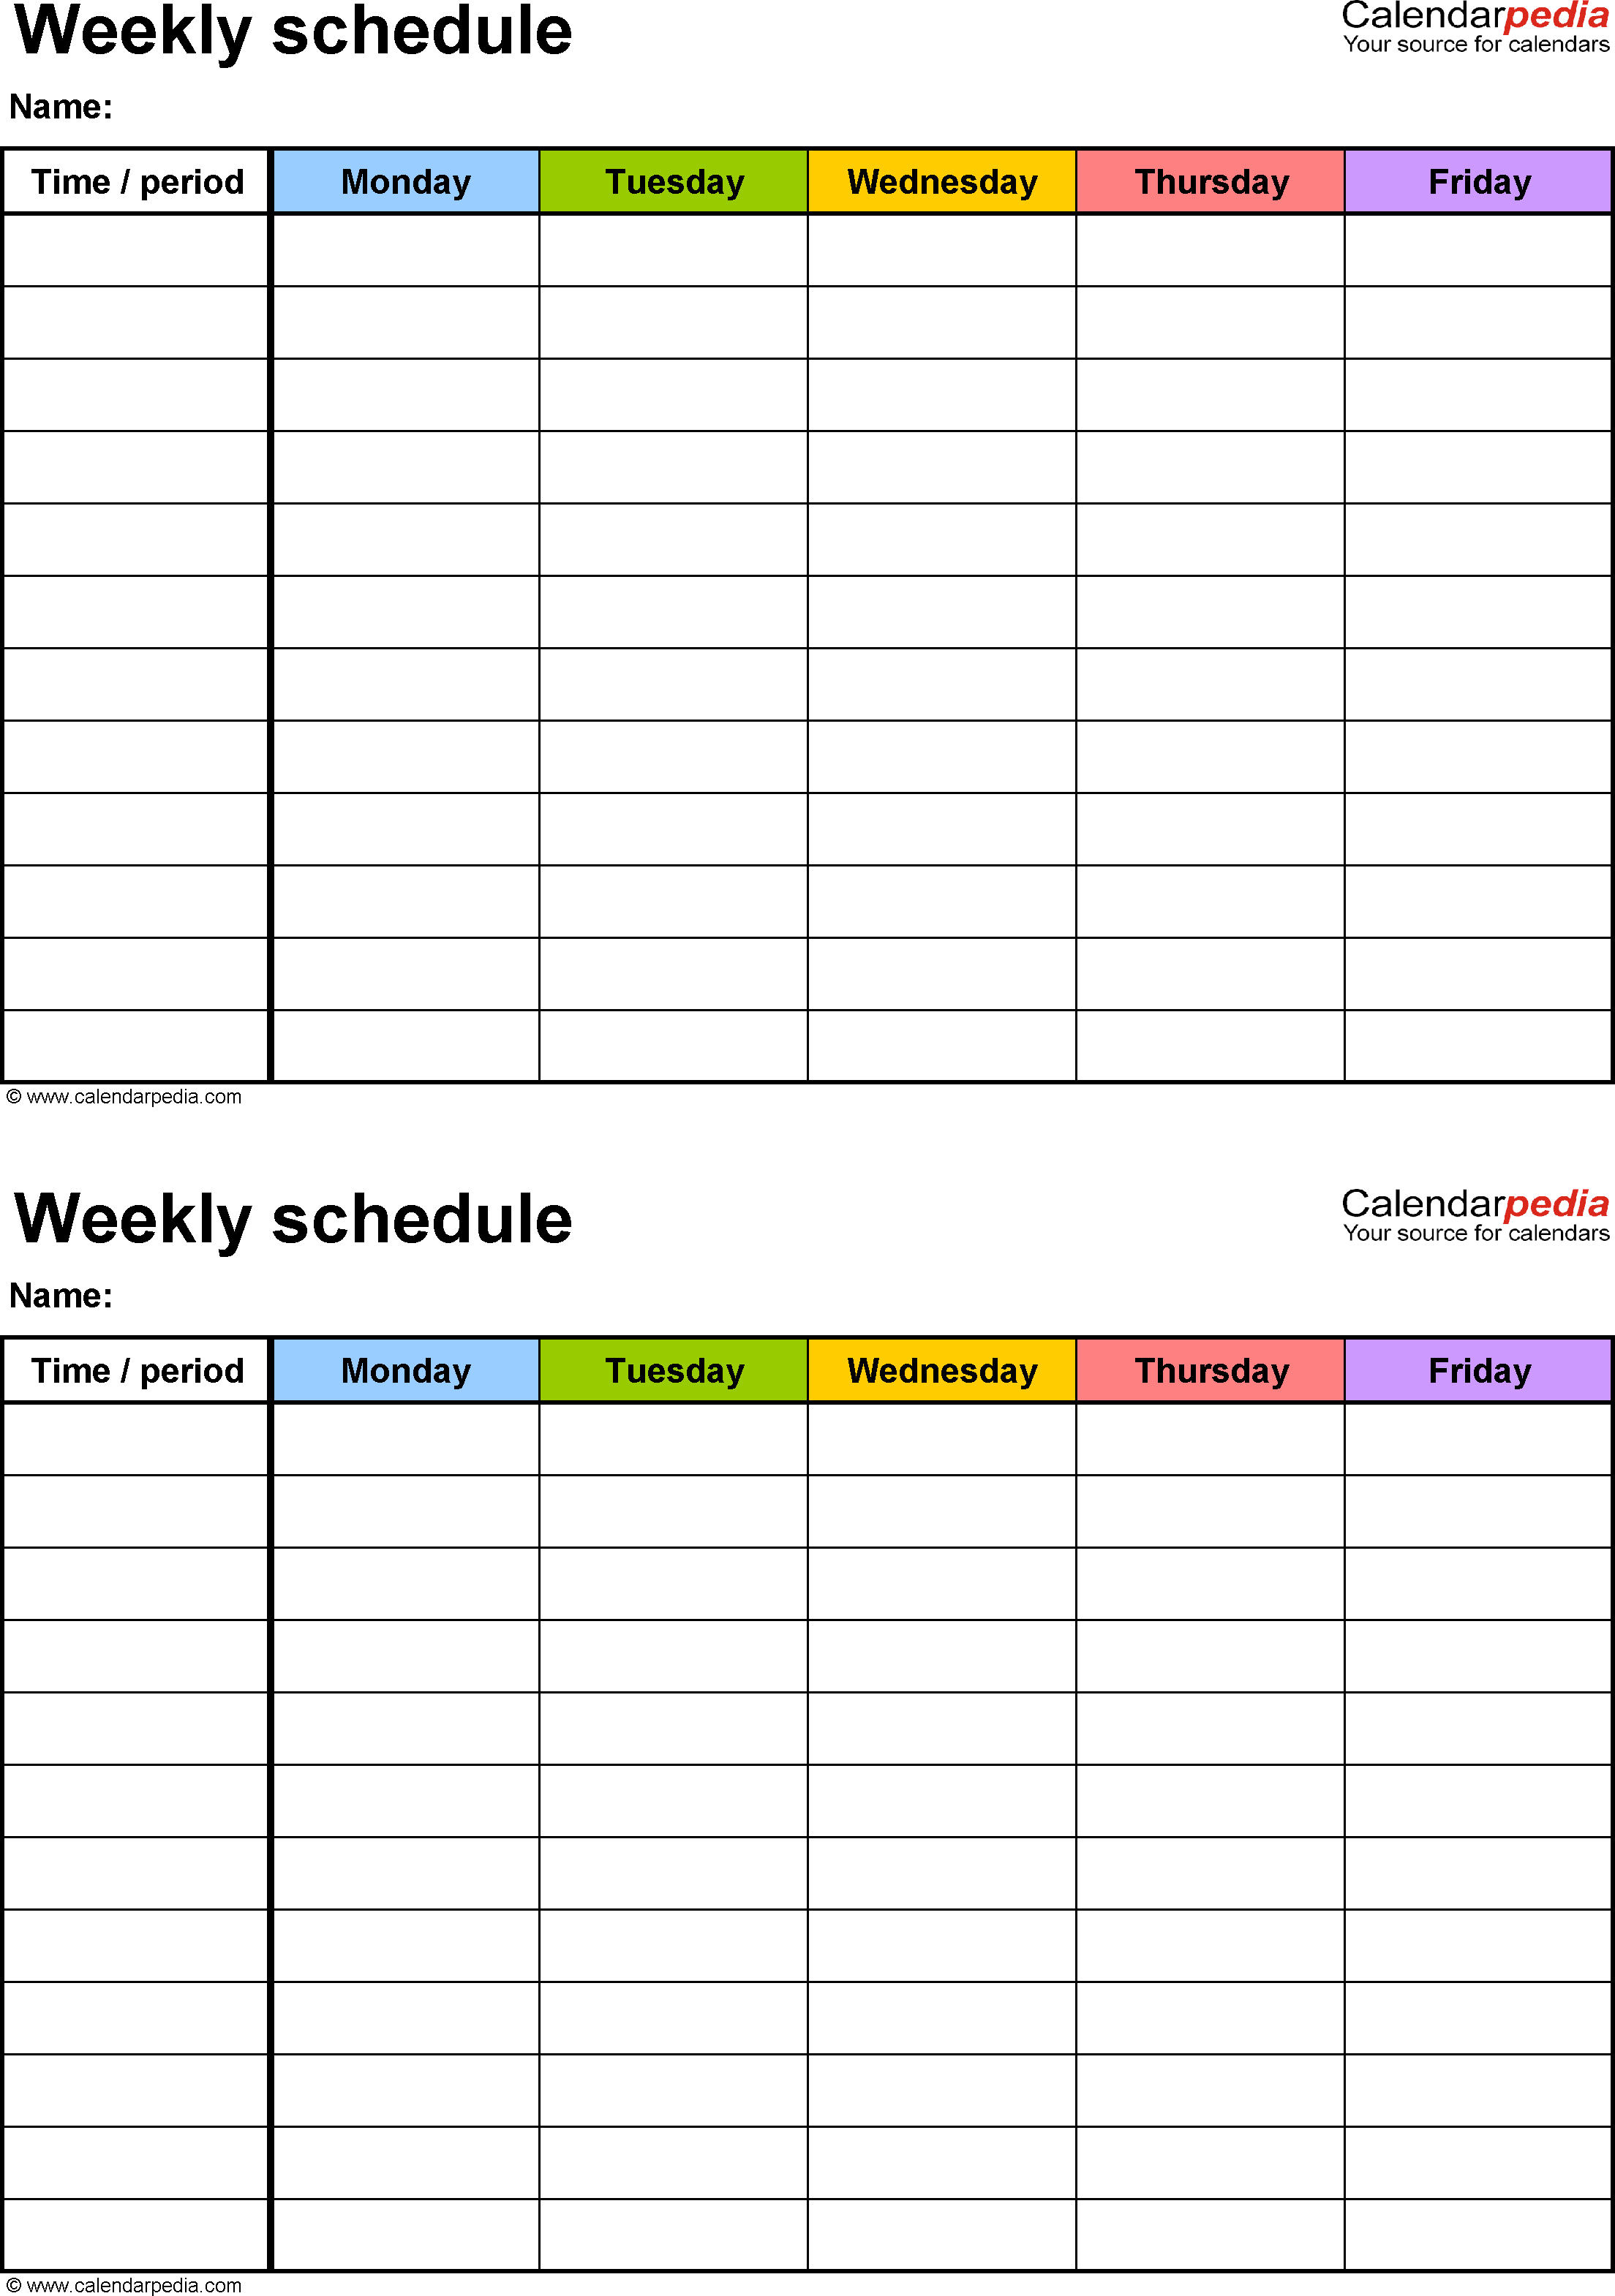 Free Weekly Schedule Templates For Word - 18 Templates within 5 School Day Calendar Blank